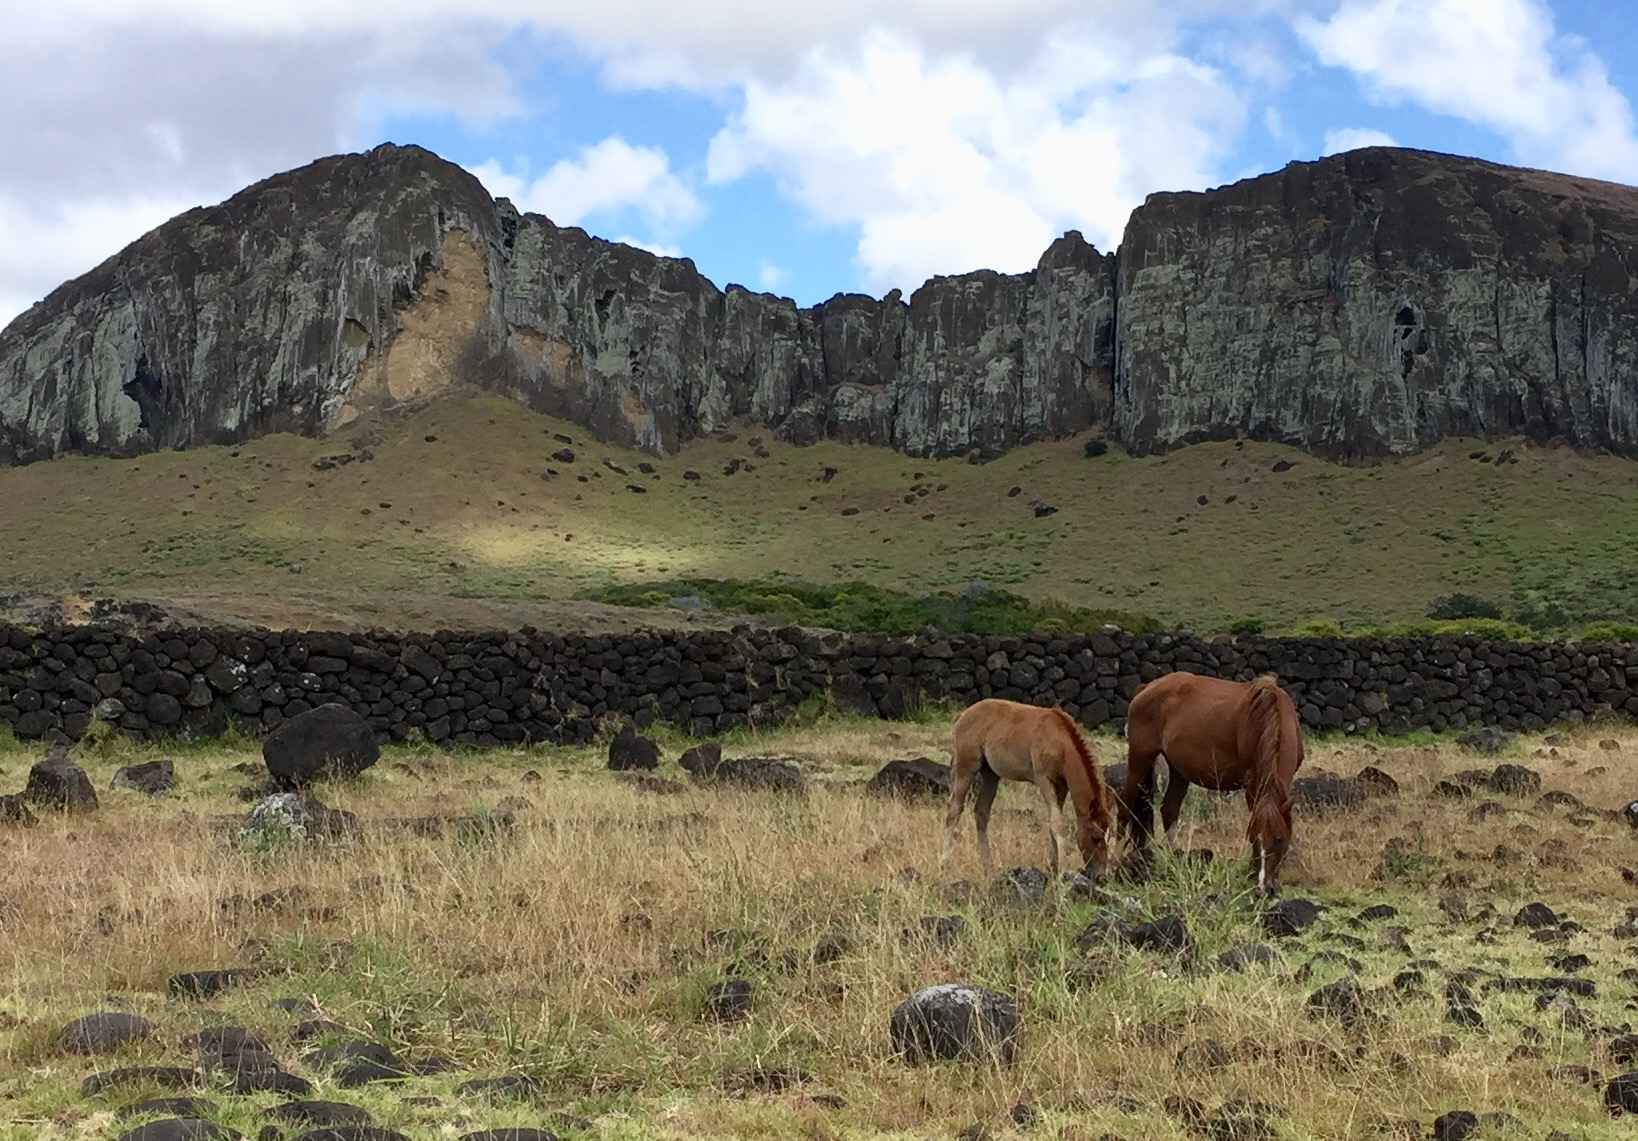 Little remains of the original forest cover on Easter Island. Scientists know that it was once heavily forested, but the mystery remains as to how it got that way. Was it humans or rats that were primarily responsible?